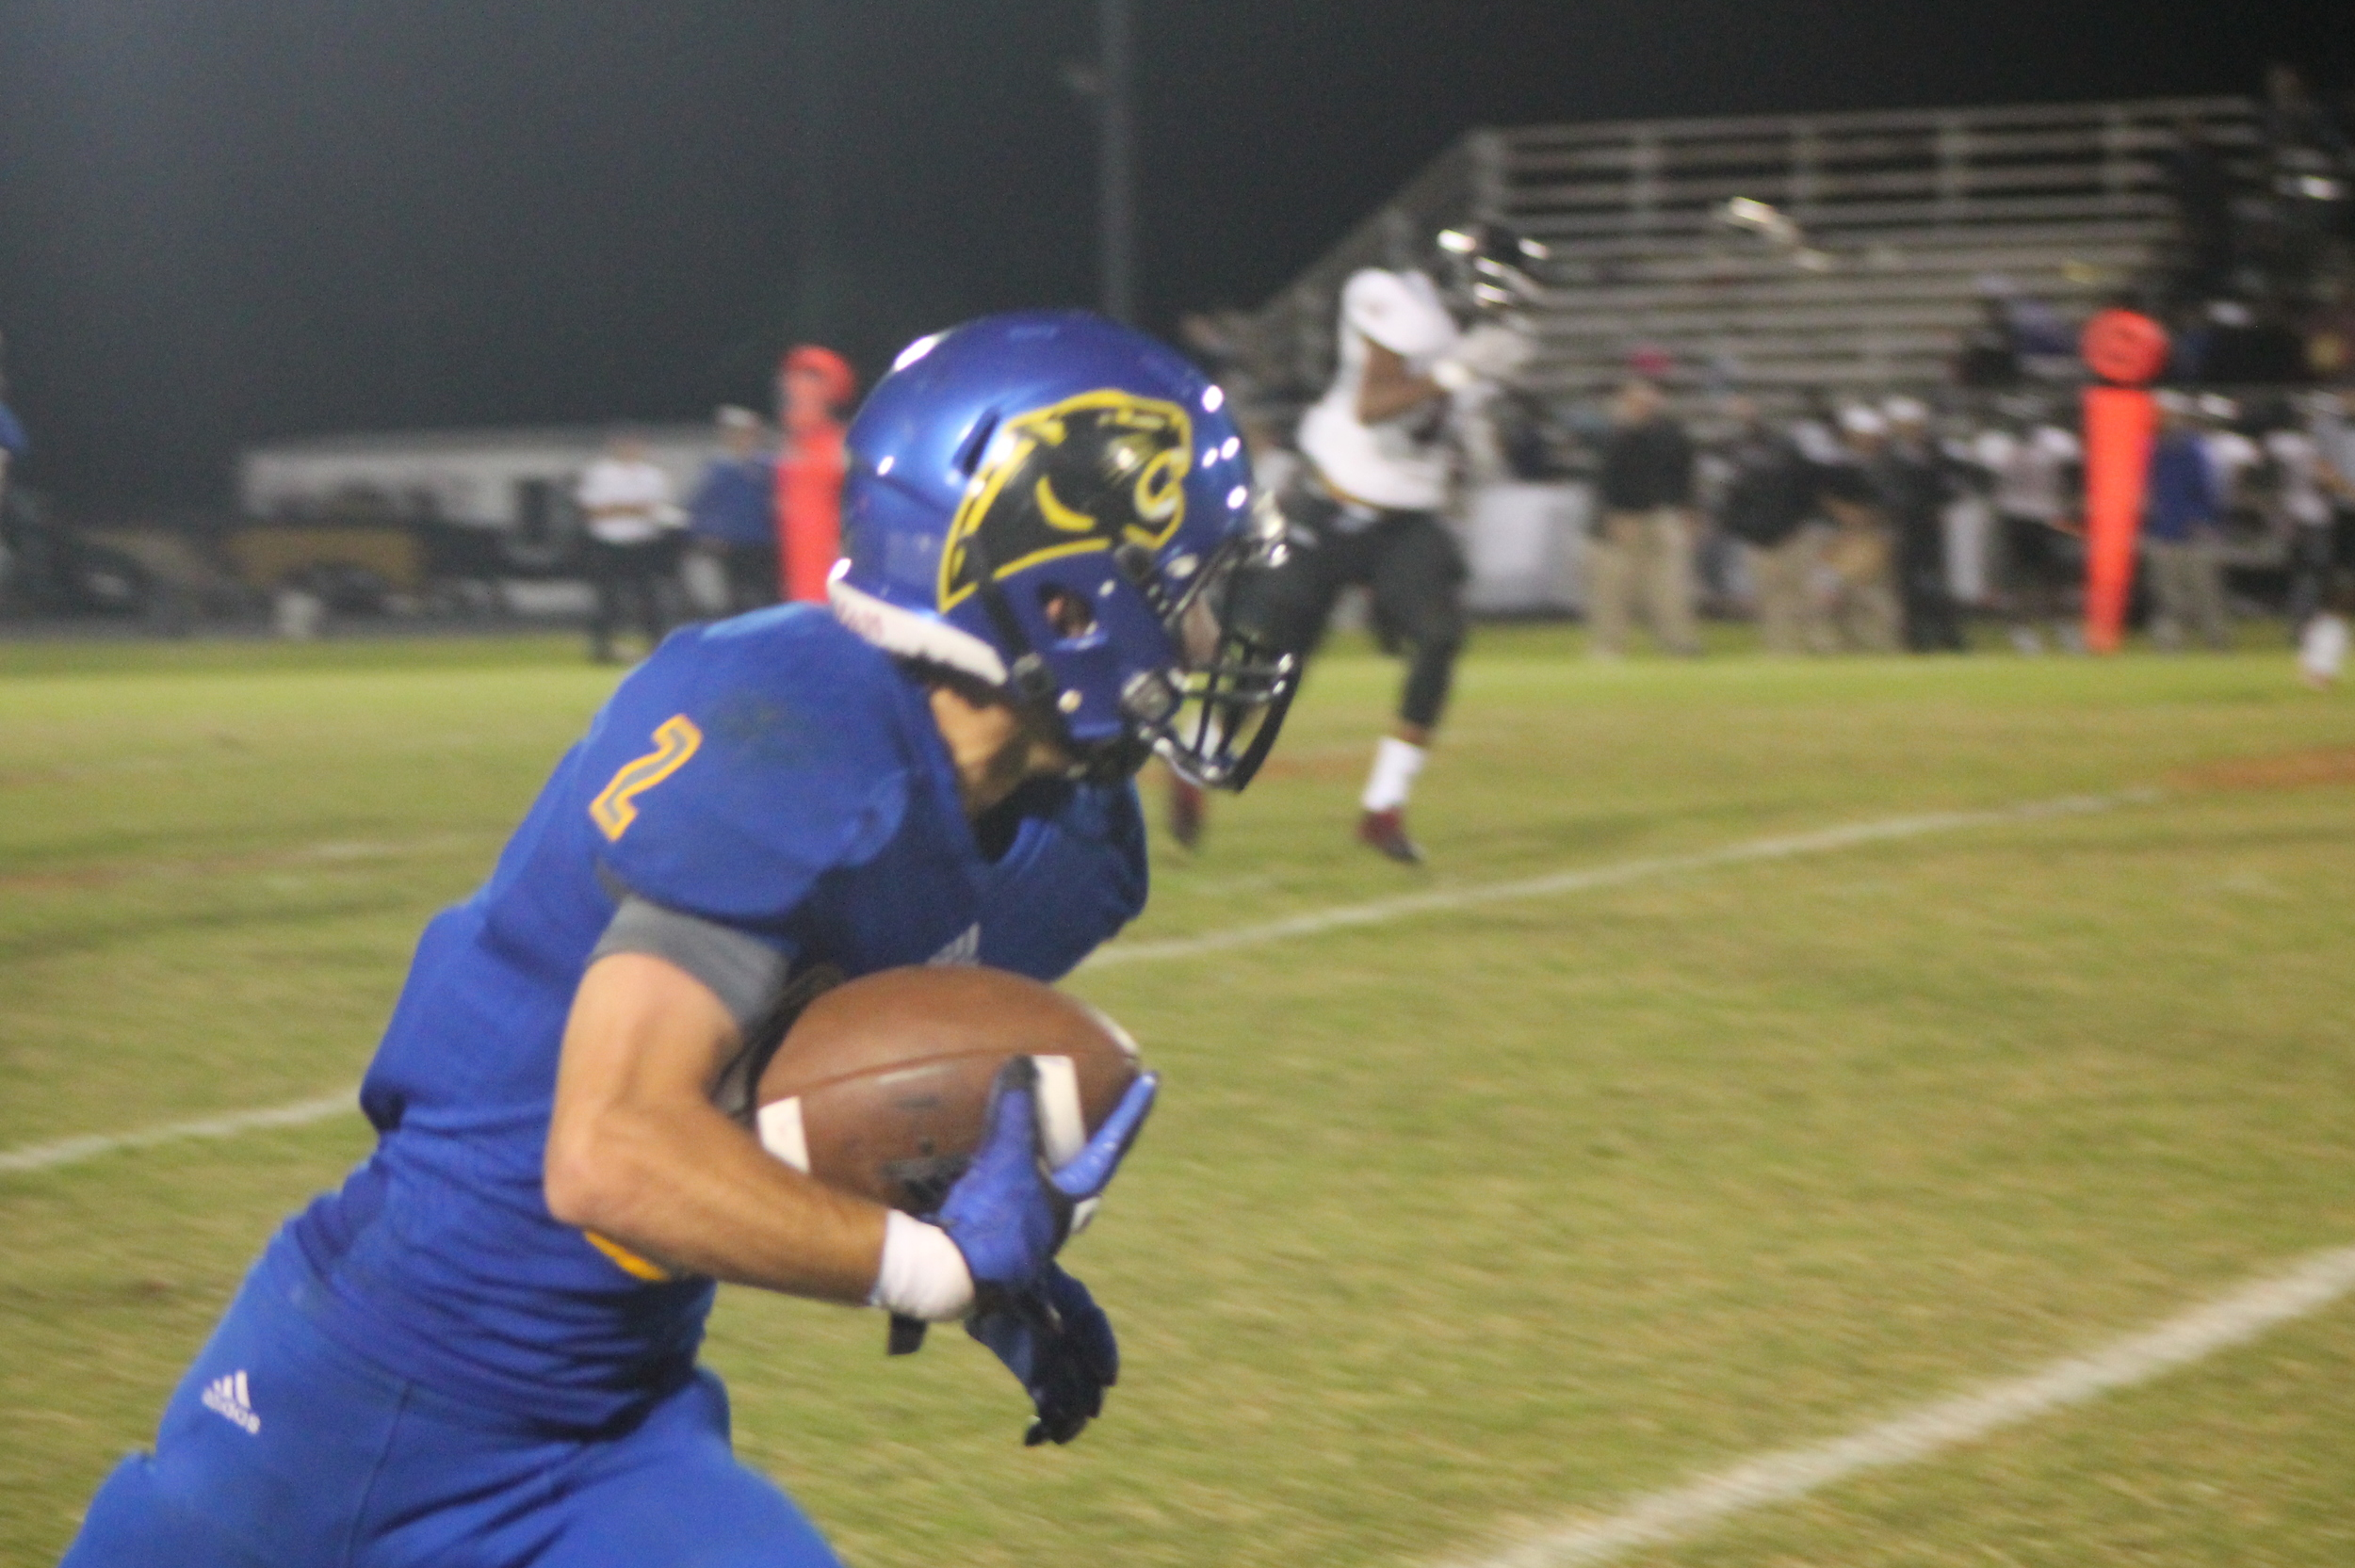 (Photo by Adam Routon) Sam Cowling with a reception and touchdown against LE Thursday night.